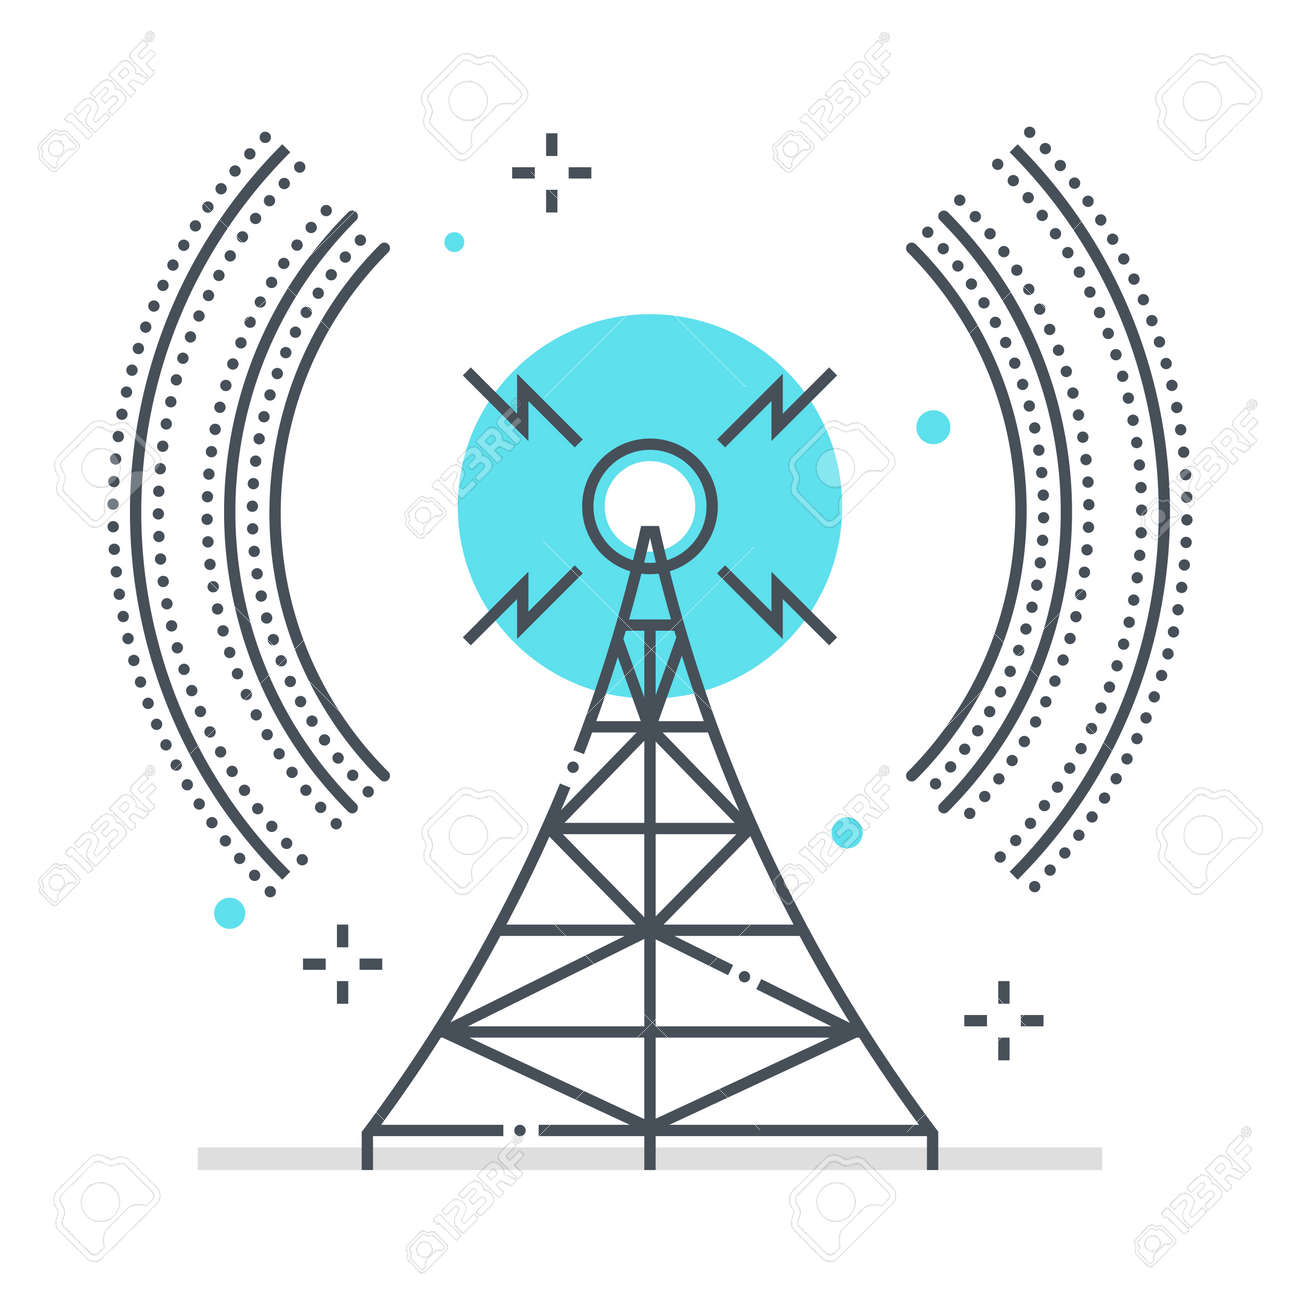 Broadcasting related color line vector icon, illustration. The icon is about communication, network, station, tower, wifi, wireless. The composition is infinitely scalable. - 163698310